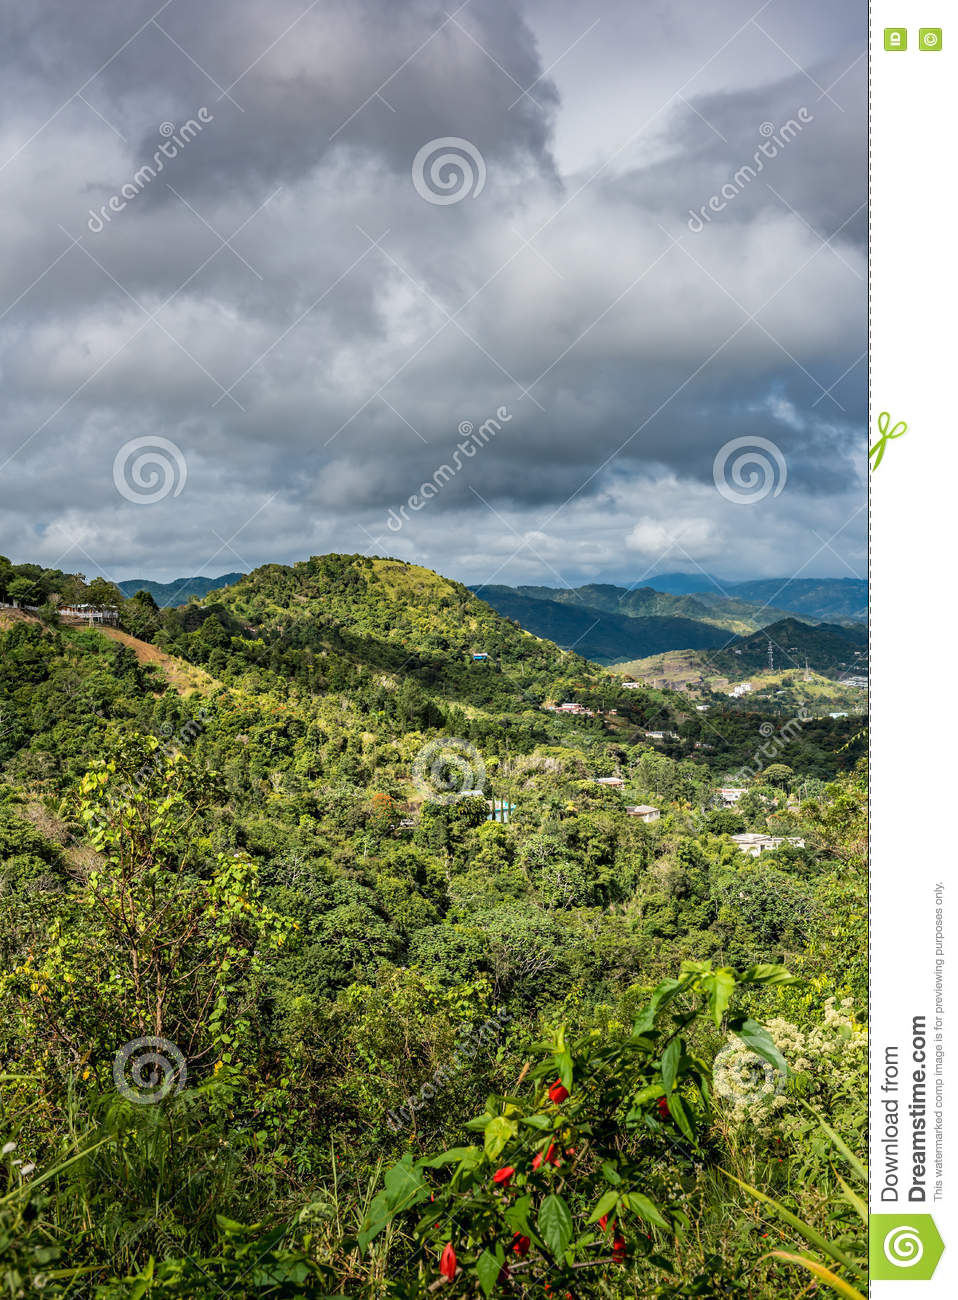 Puerto Rican landscape with houses among the trees